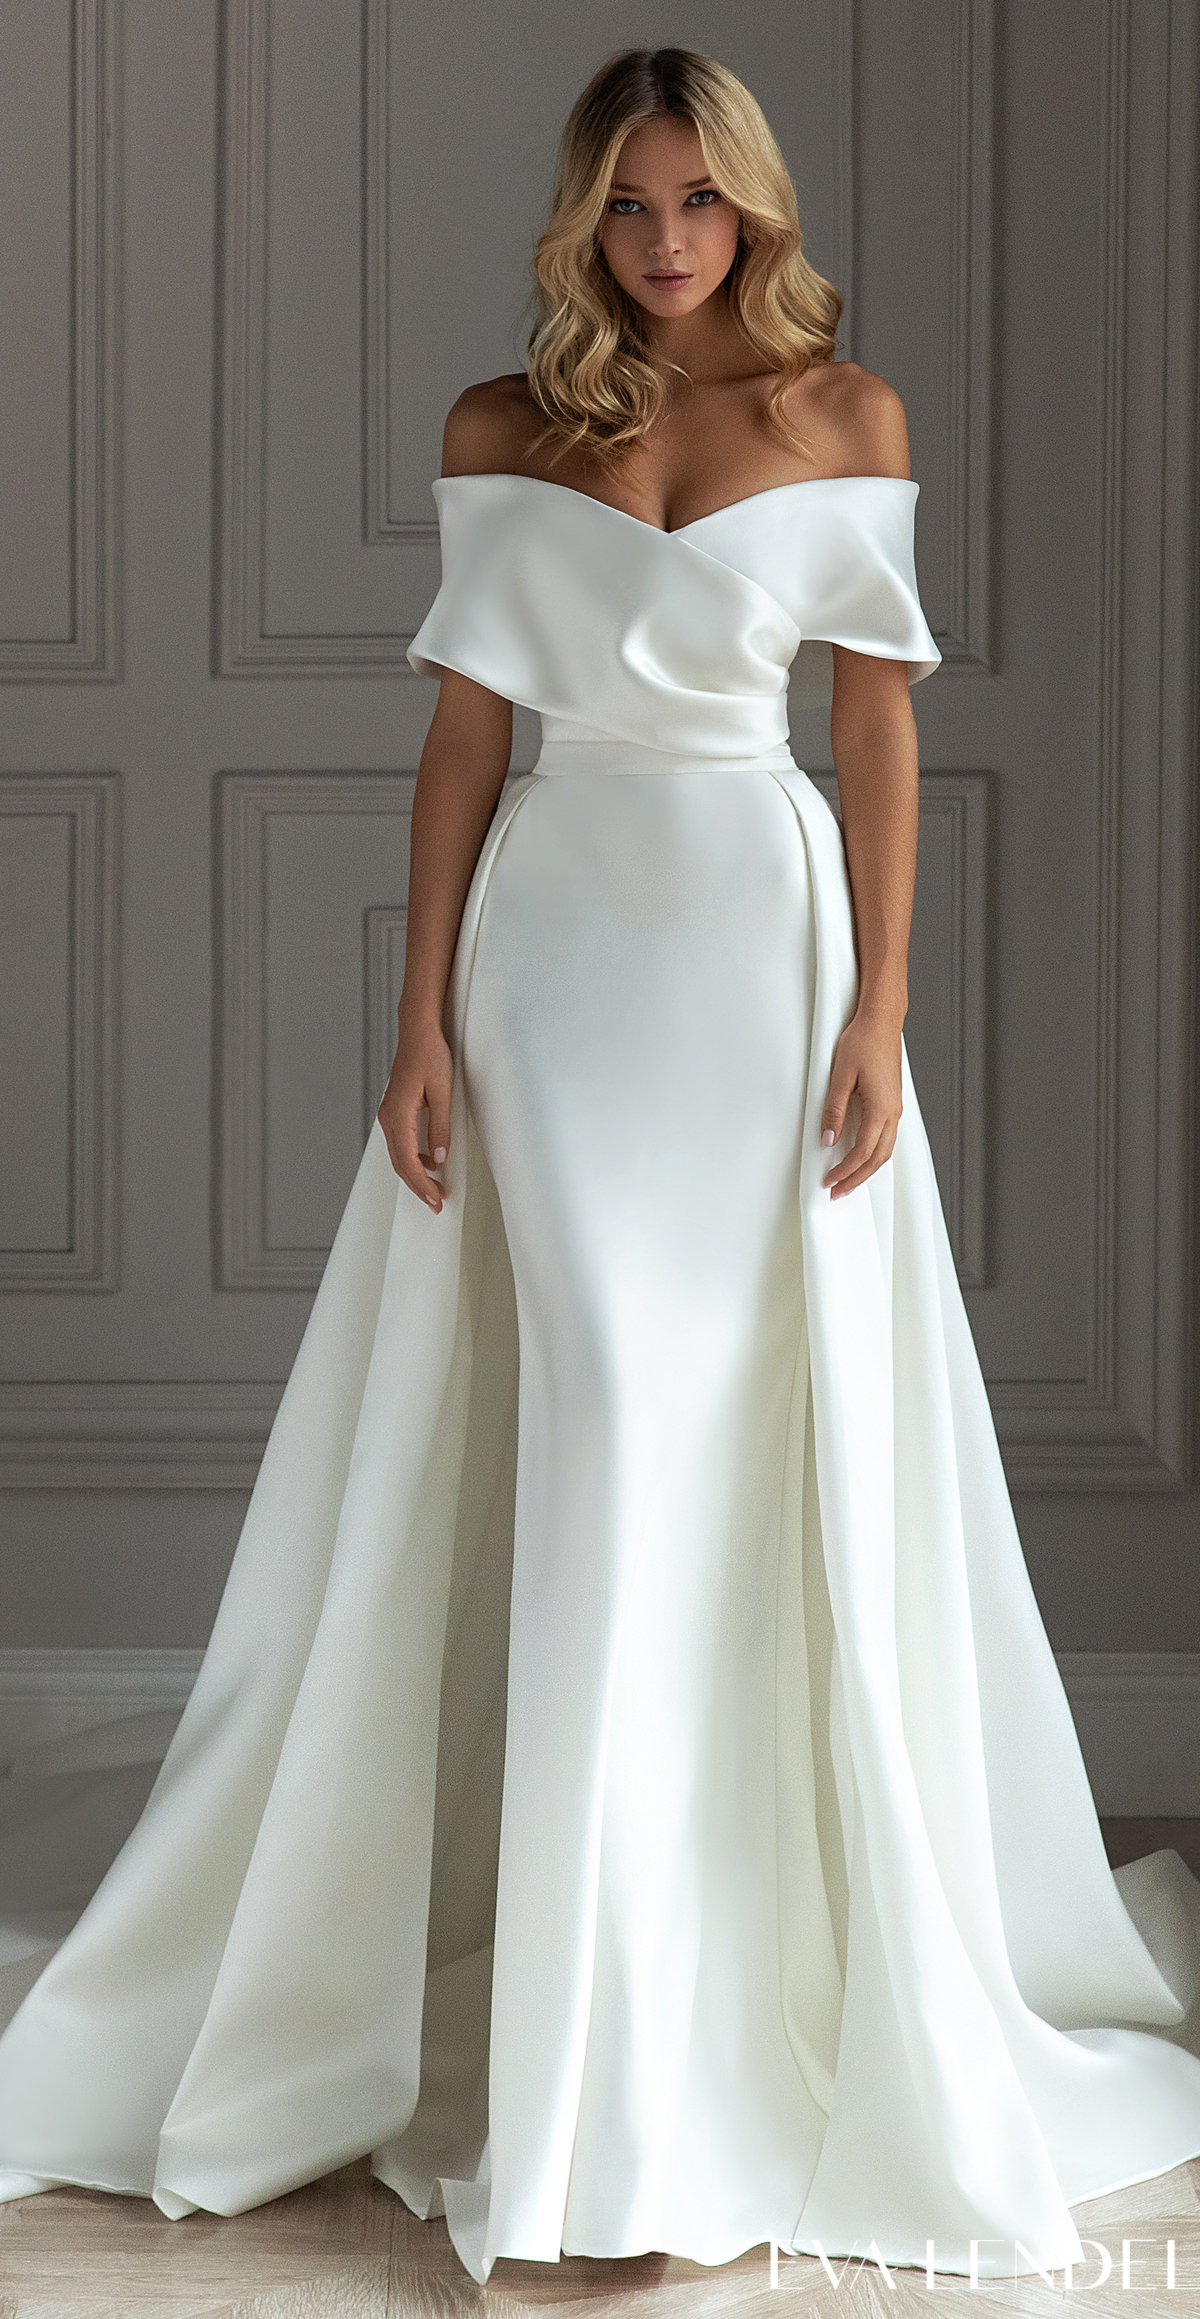 Eva Lendel Wedding Dresses 2021- Less is More Collection -Jess